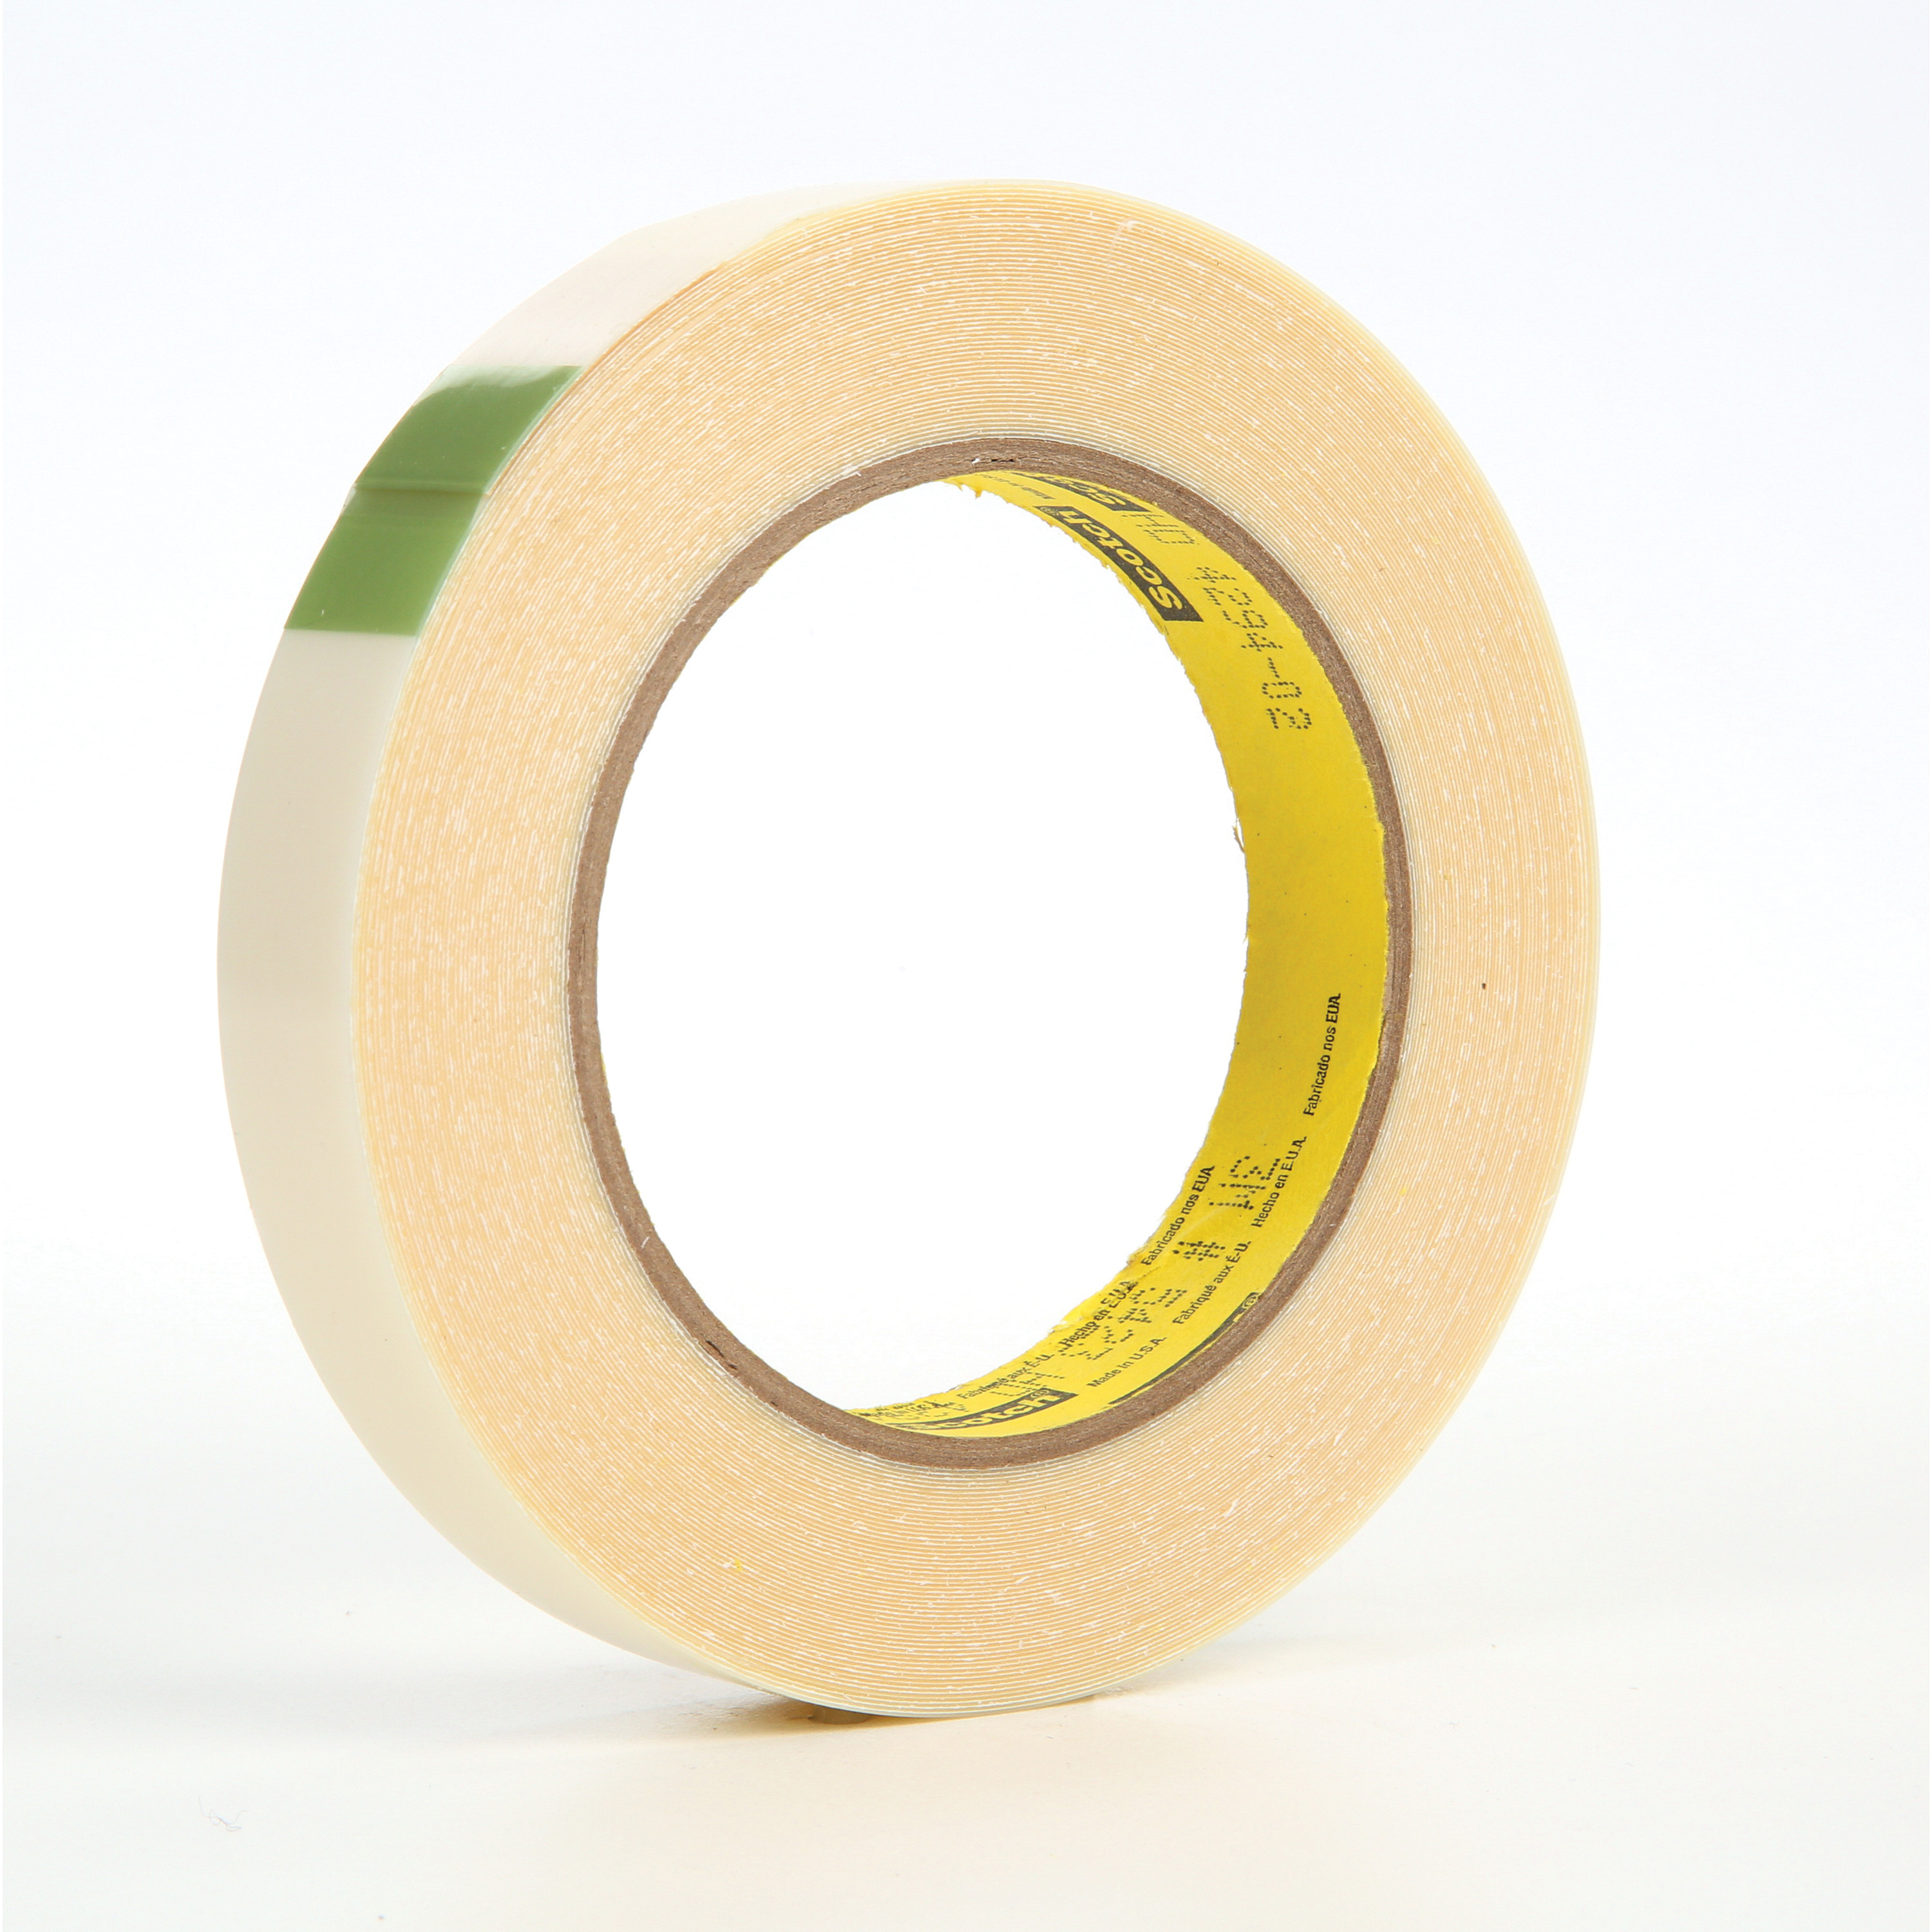 3M™ 021200-11991 Film Tape, 18 yd L x 3/4 in W, 11.7 mil THK, Rubber Adhesive, UHMWP Backing, Transparent